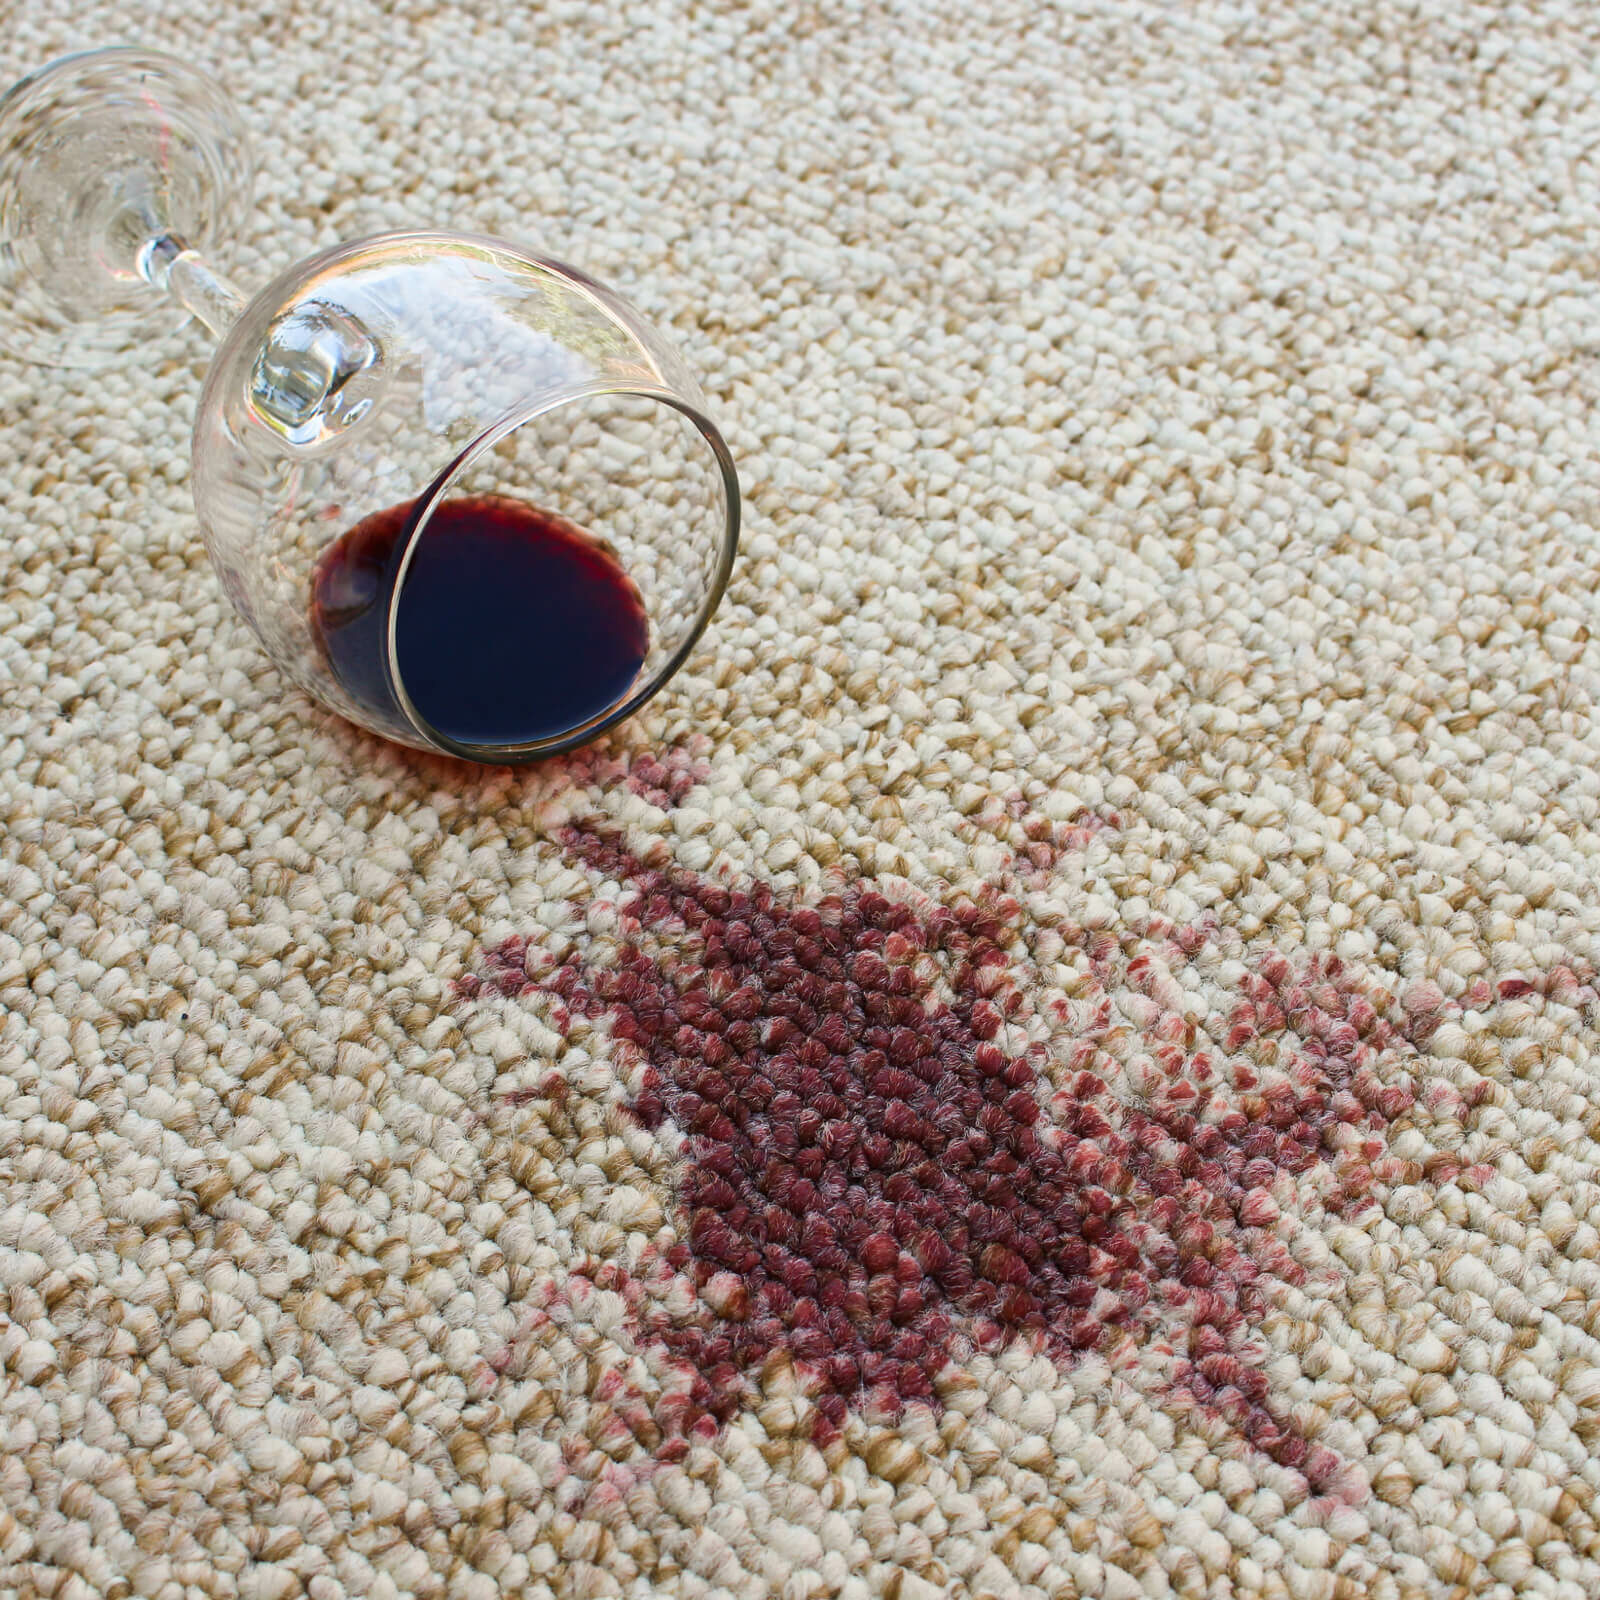 Wine stain on carpet | Carpet Care & Maintenance | Jack's Tile And Carpet